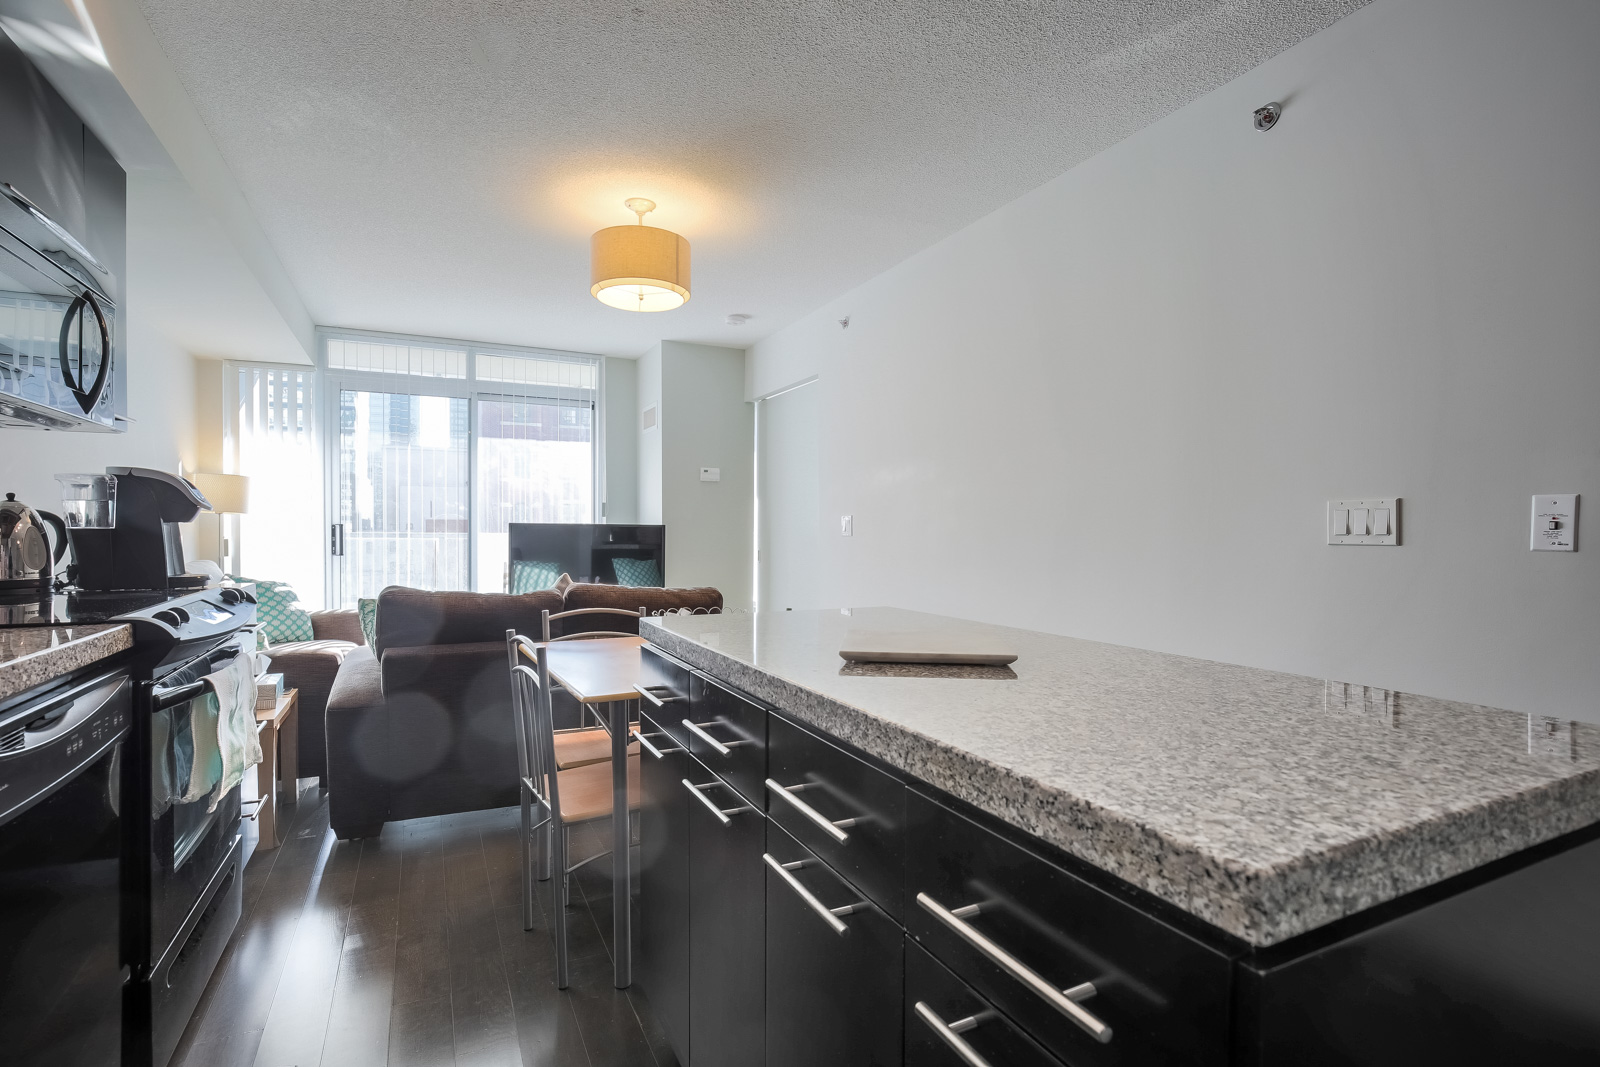 A view of the condo's granite counter-tops and kitchen island